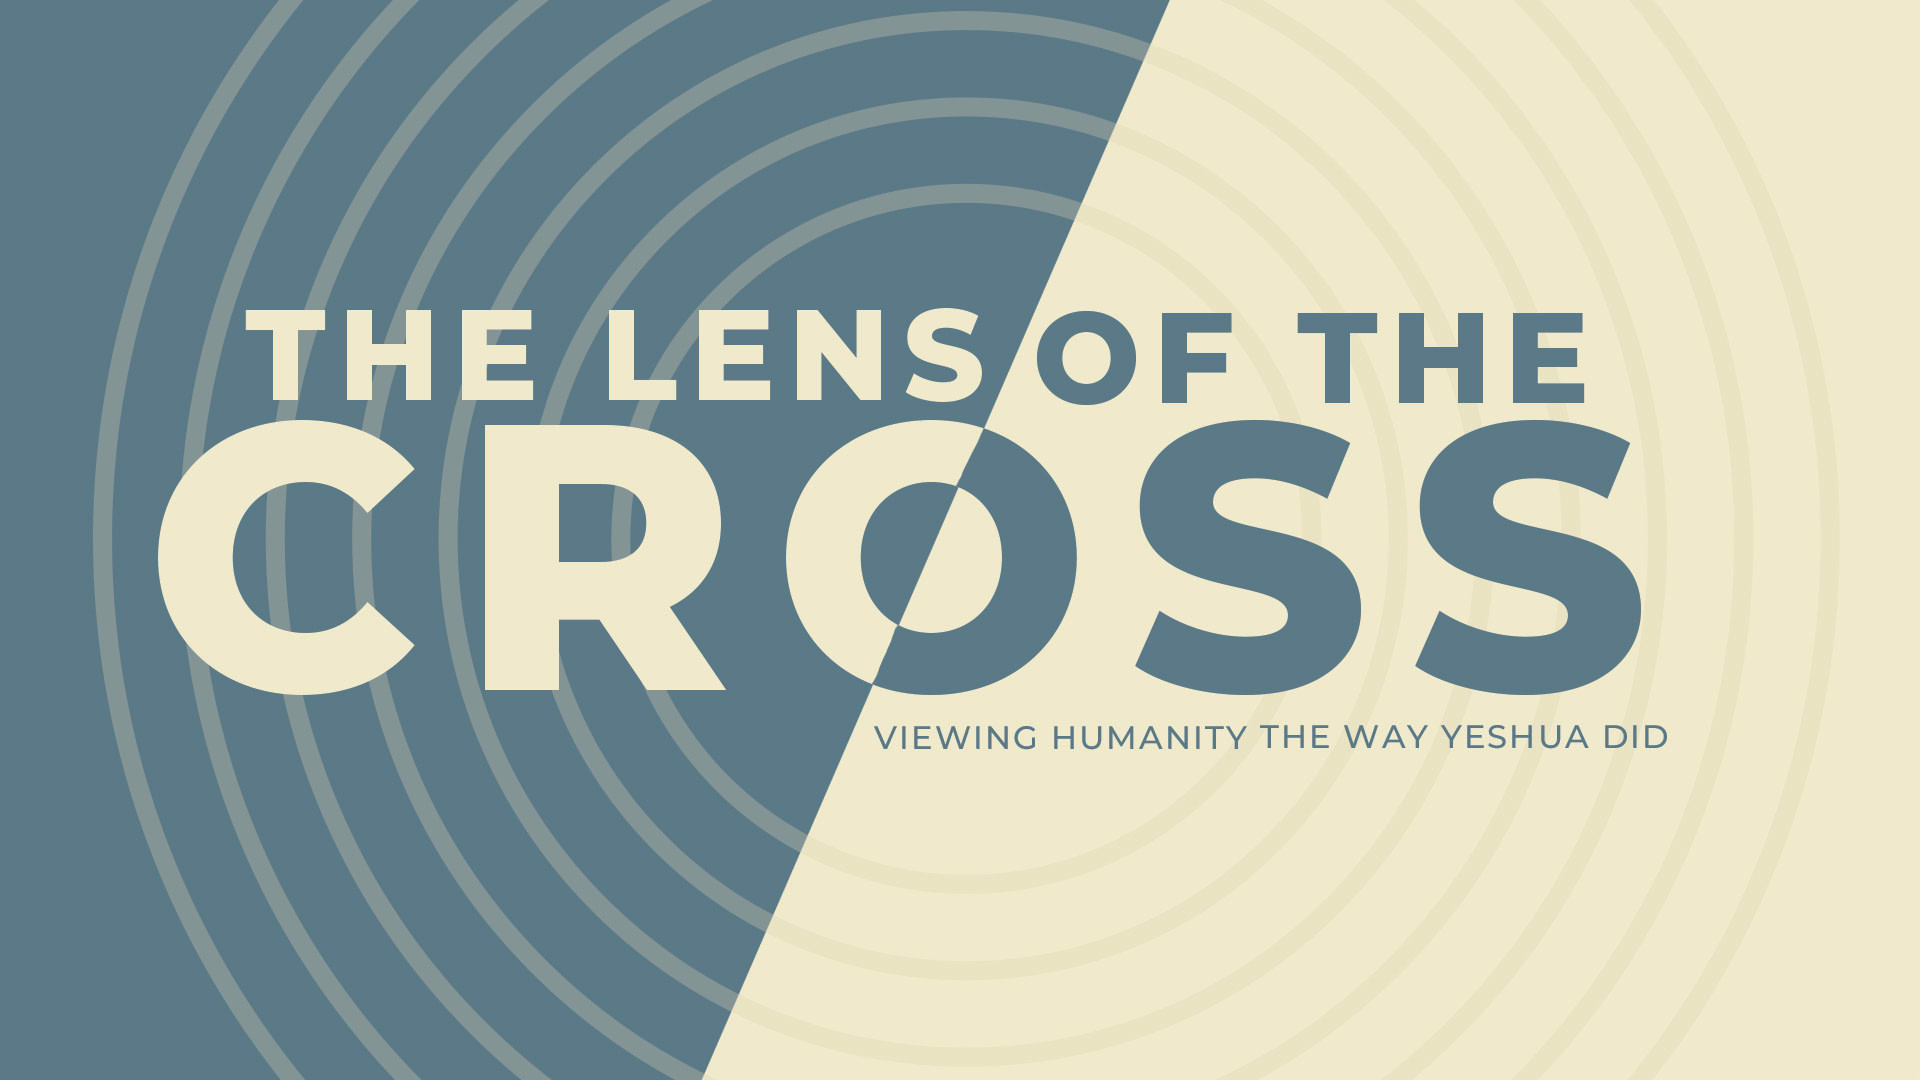 The Lens of the Cross